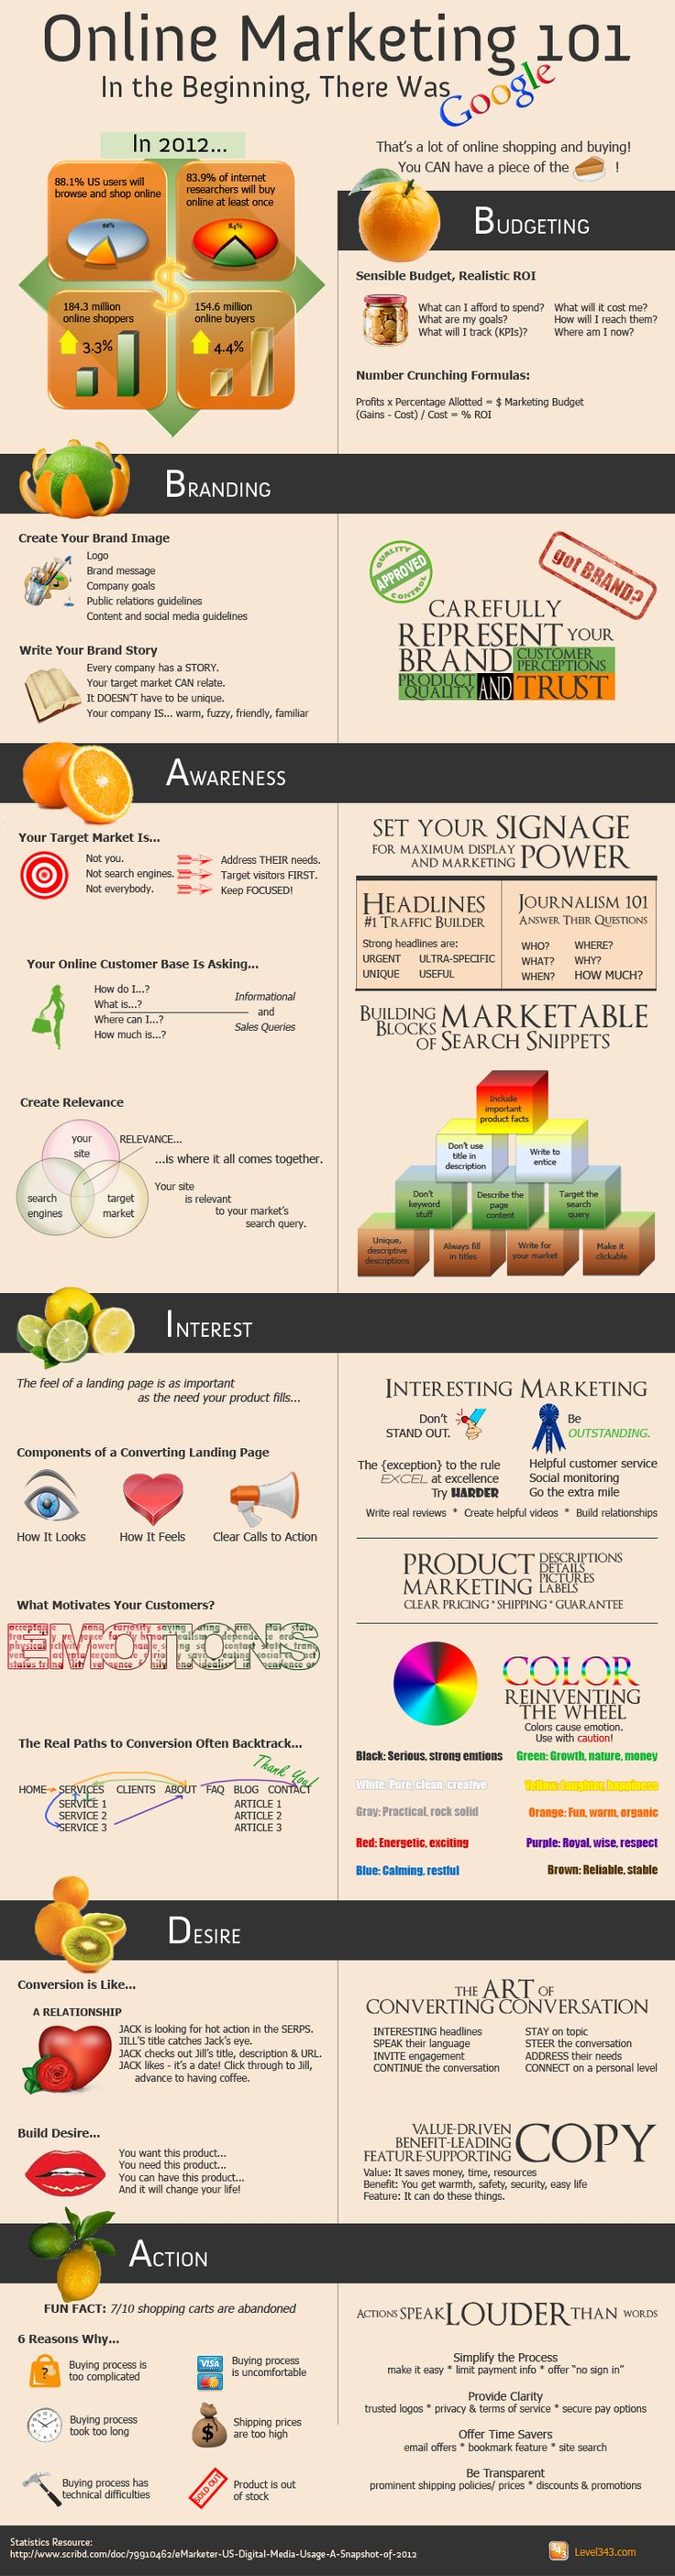 Online Marketing 101 #infographic #socialmedia